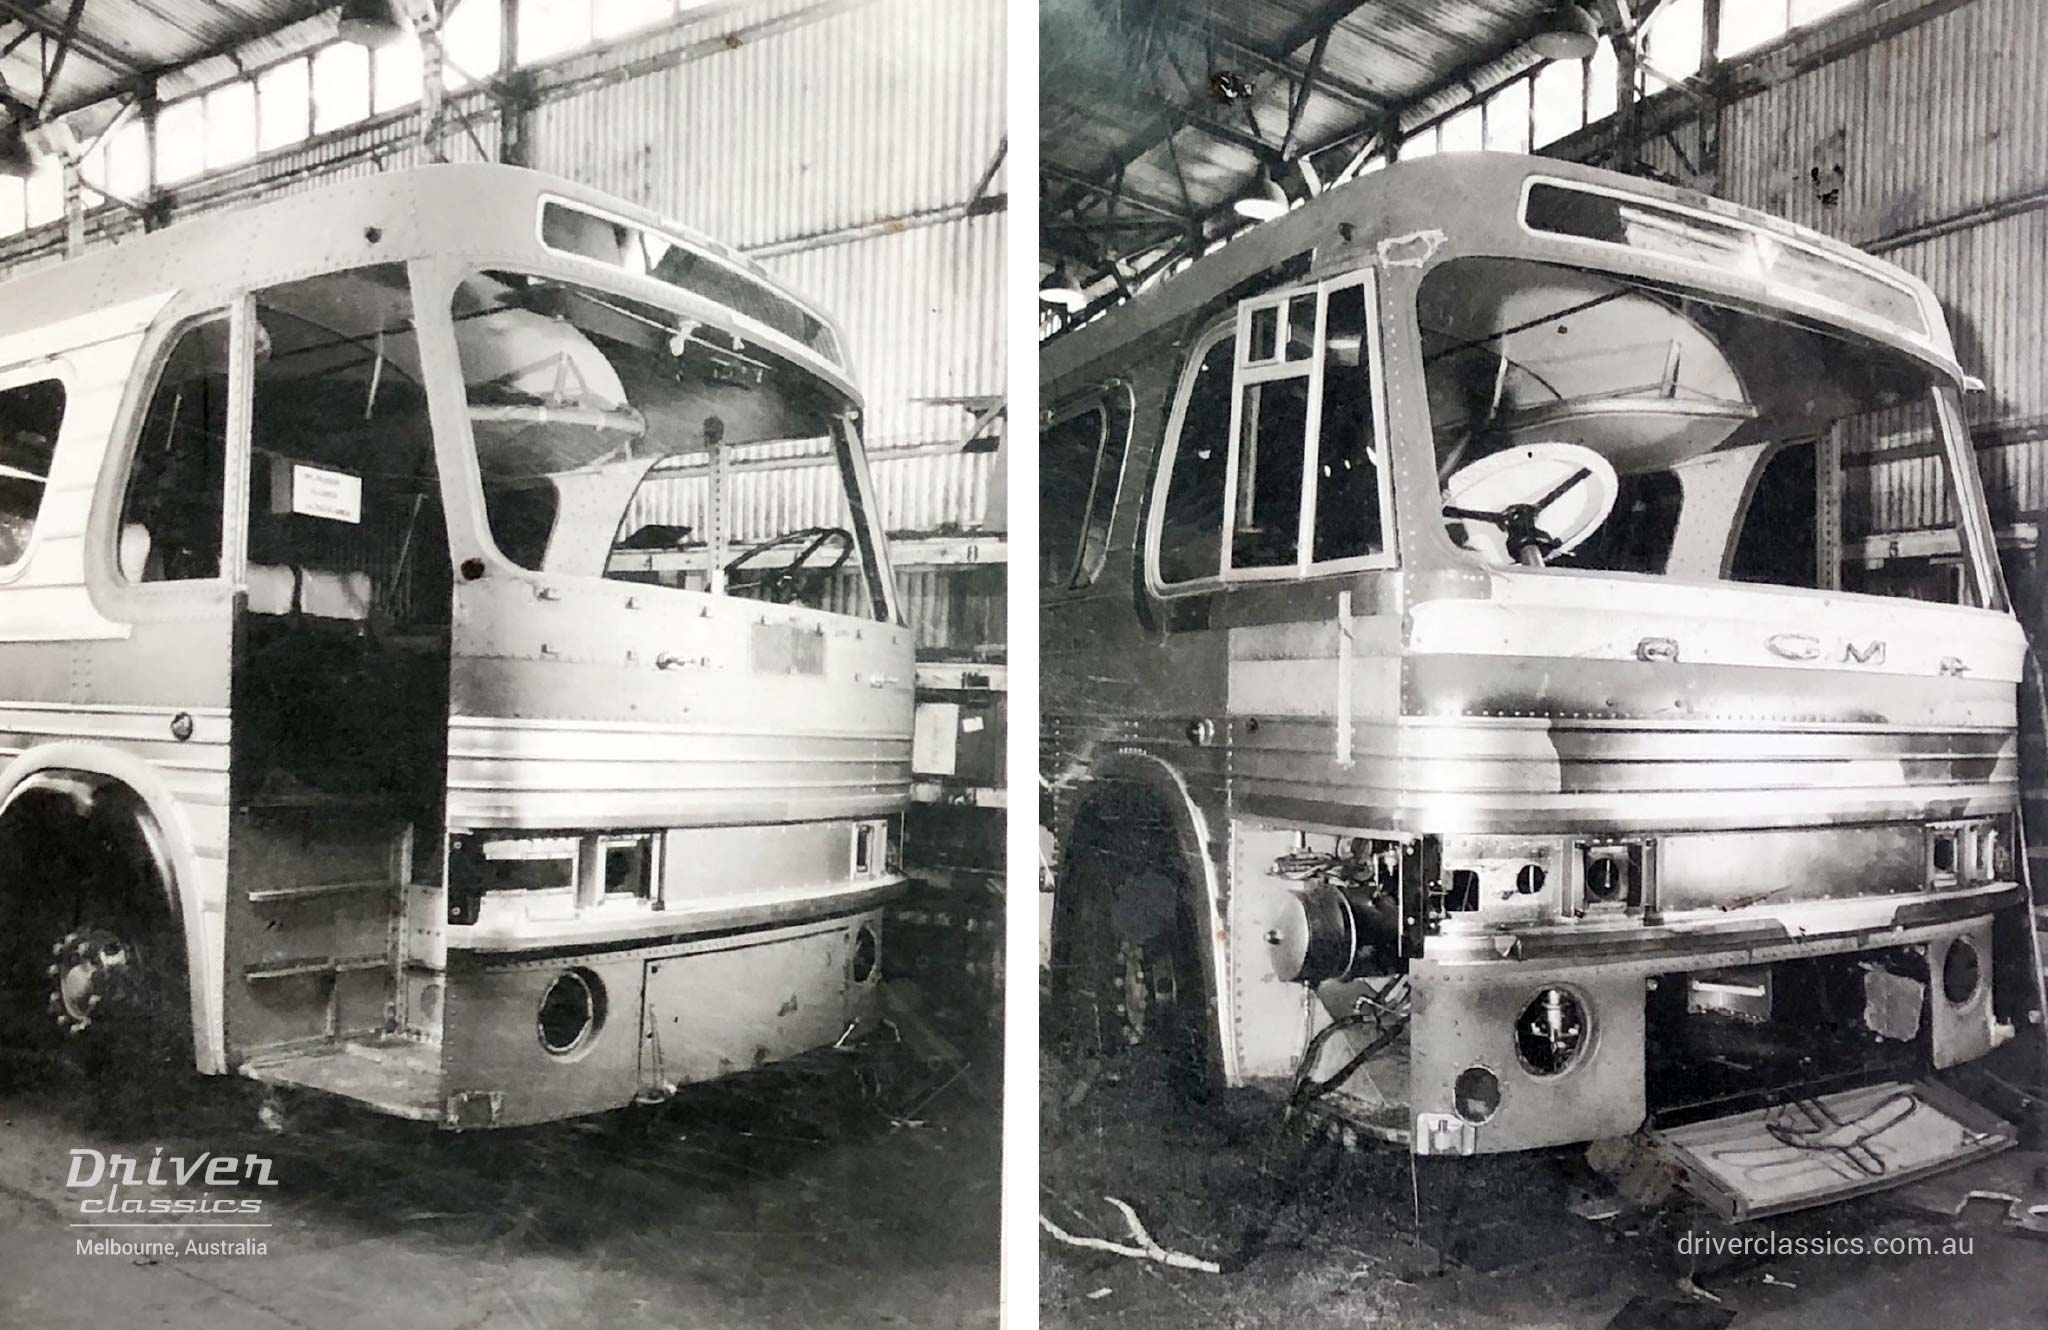 General Motors PD-4106 bus, conversion to right hand drive (RHD) by Ansair in Melbourne, VIC Australia, early 1960s